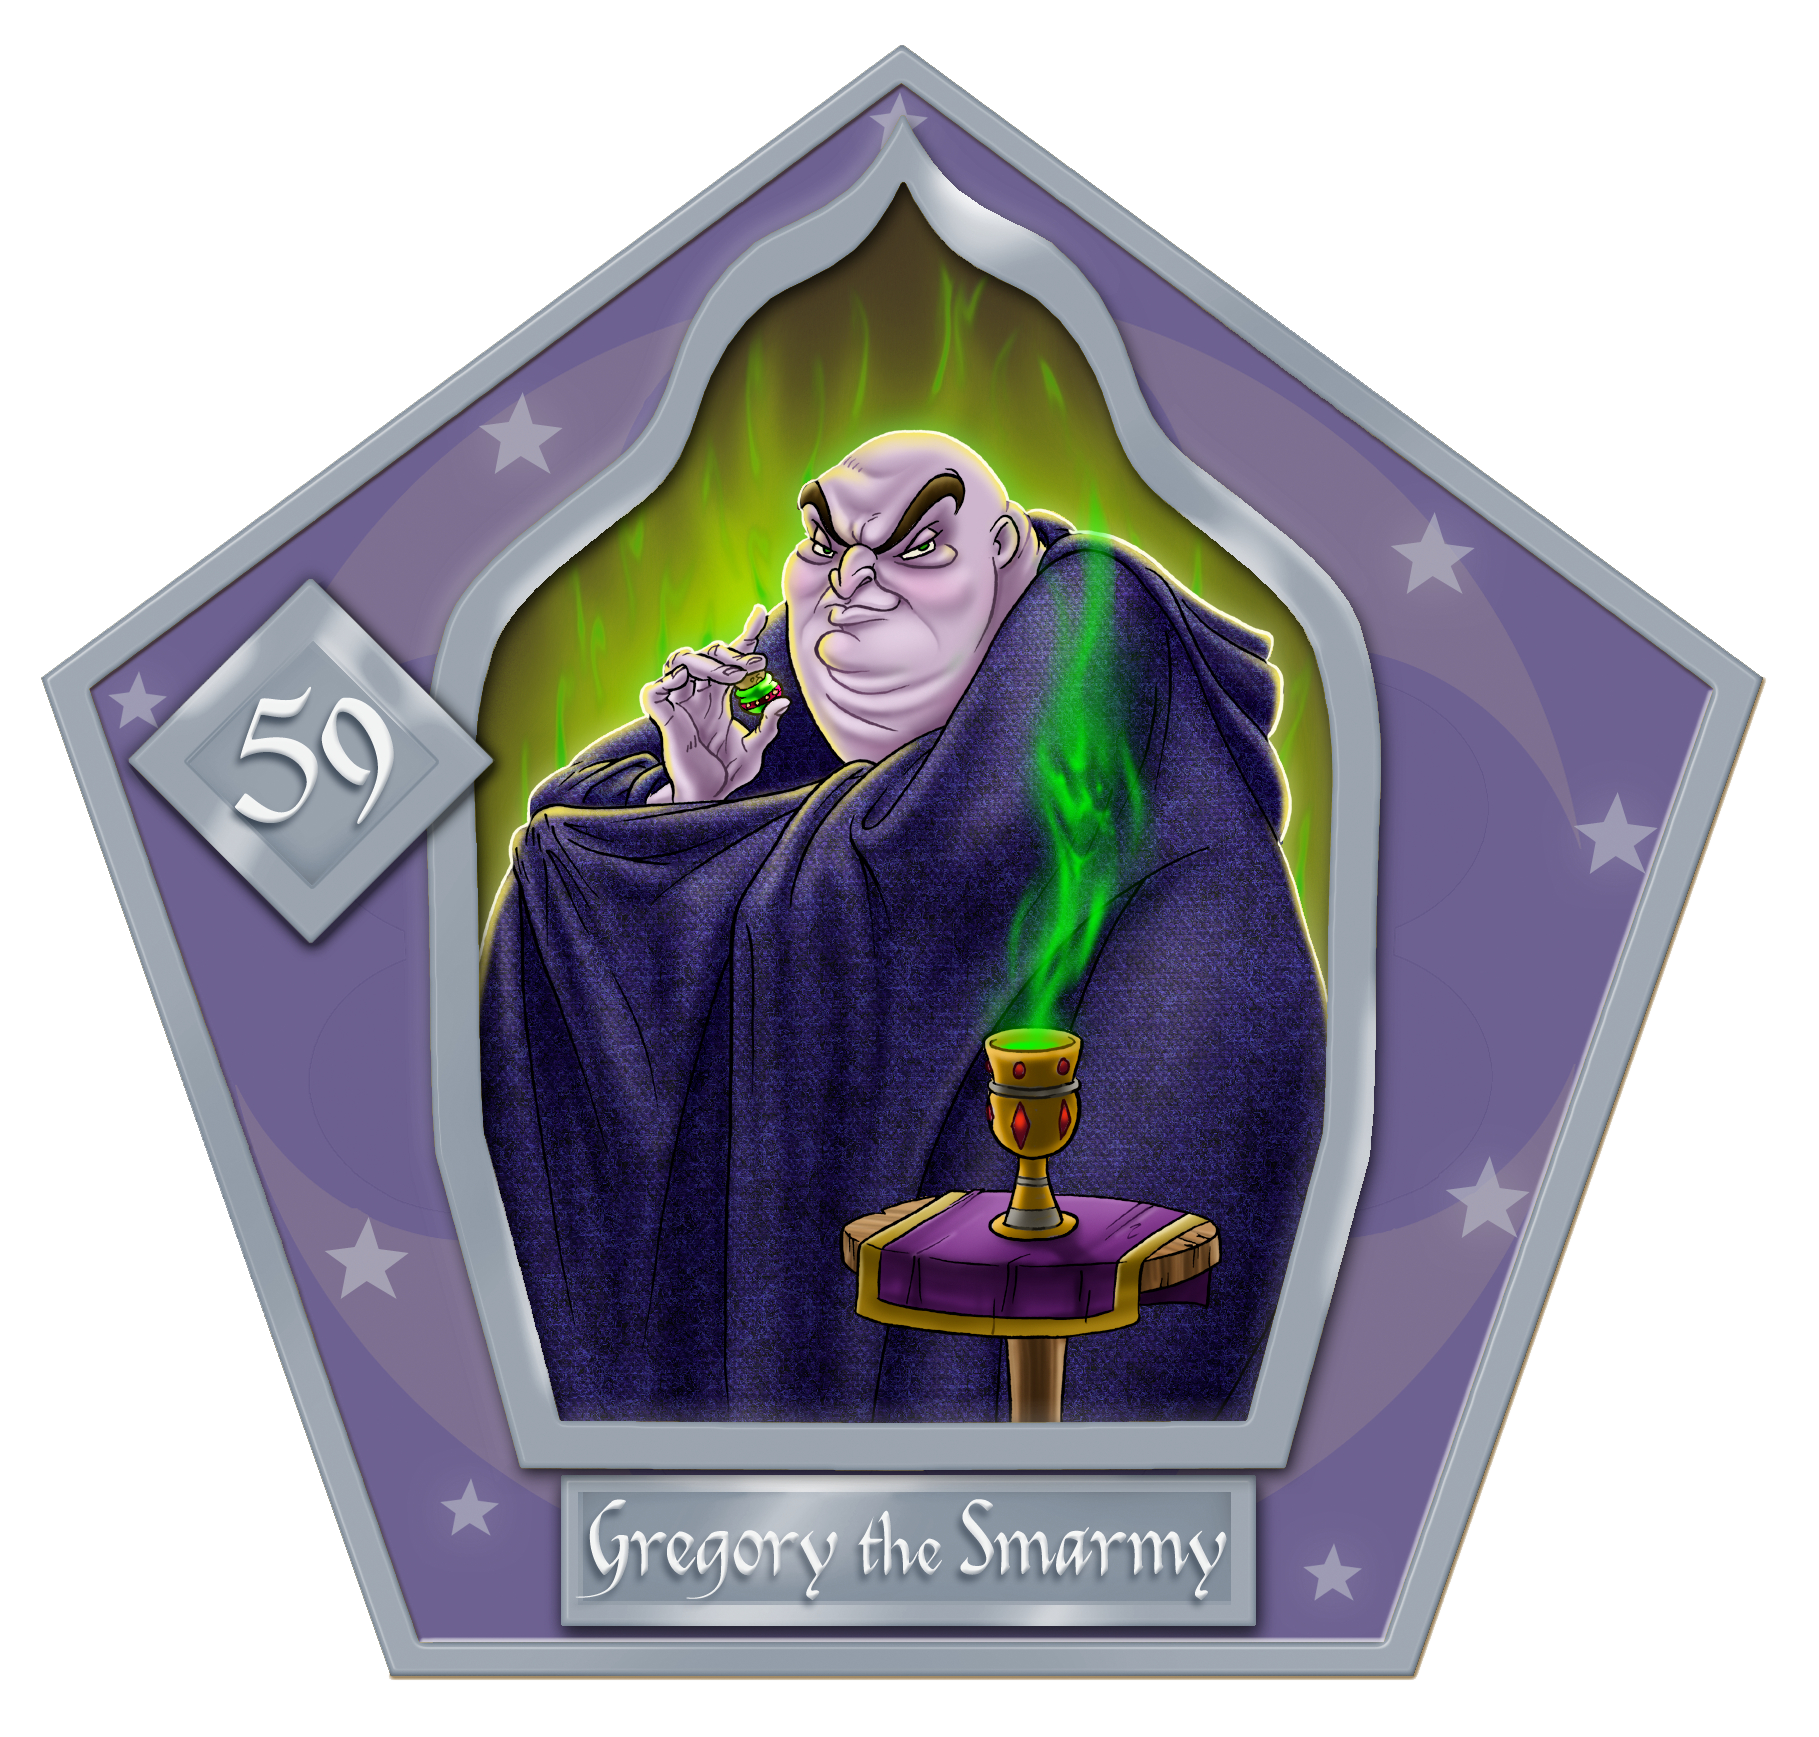 File:Gregory The Swarmy-59-chocFrogCard.png